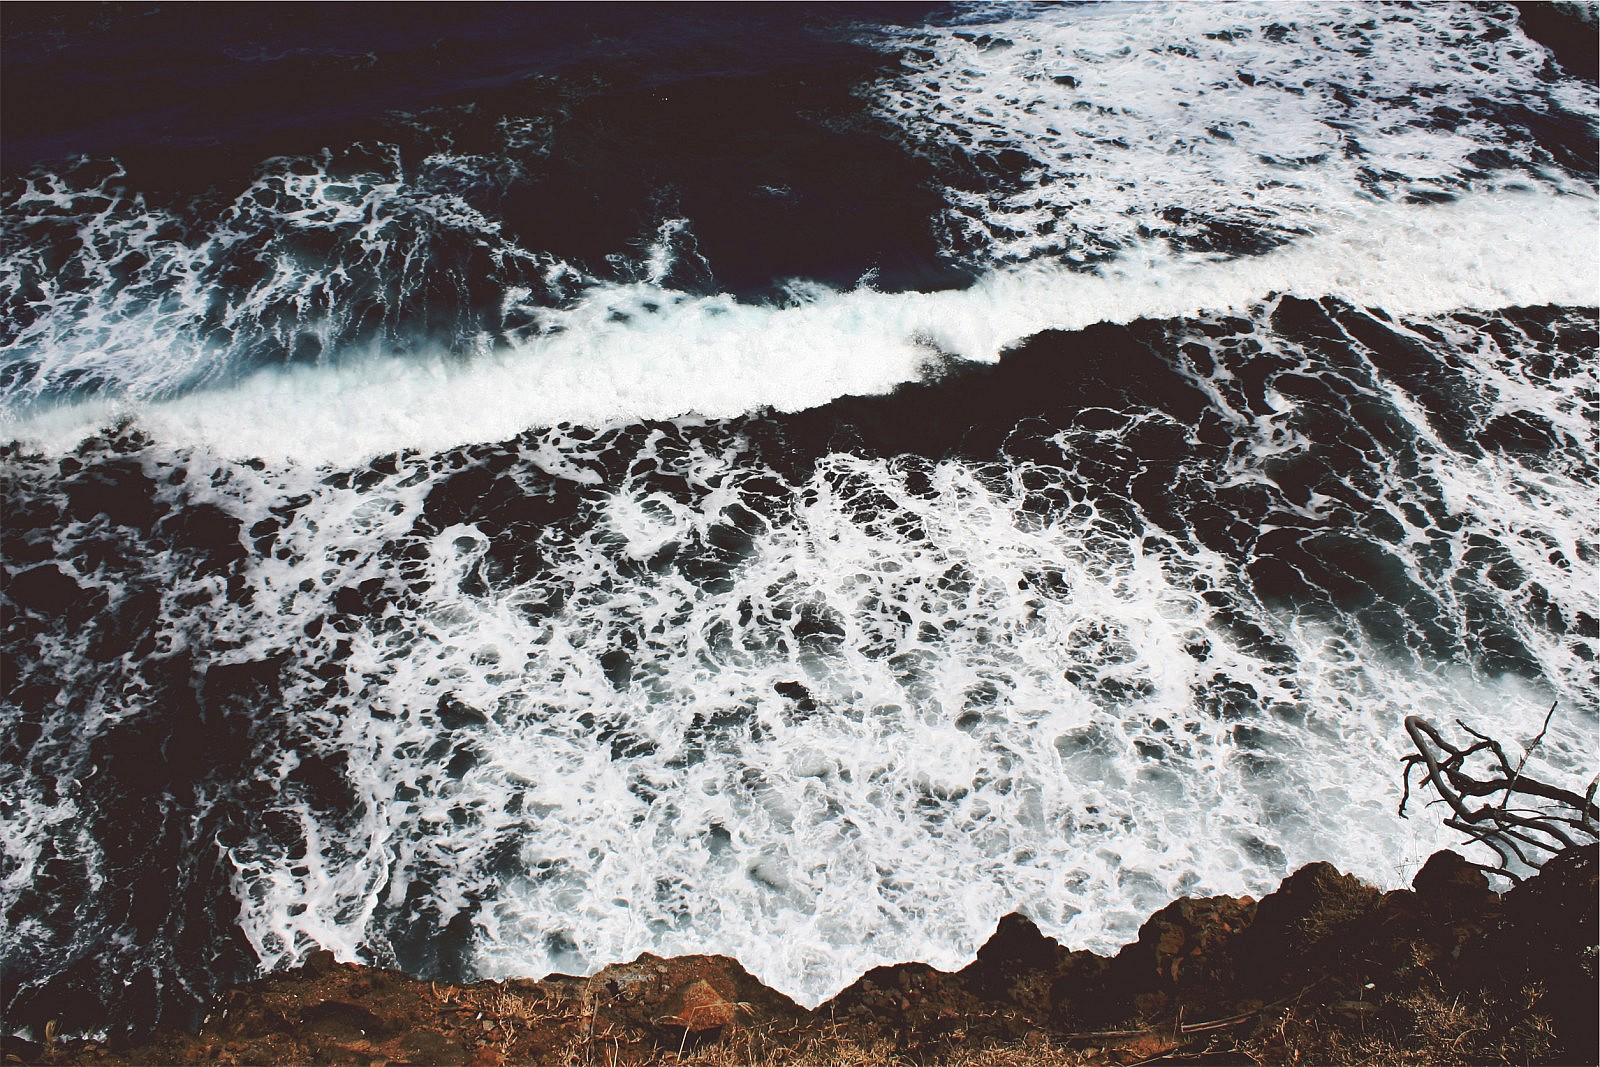 sea-nature-ocean-waves